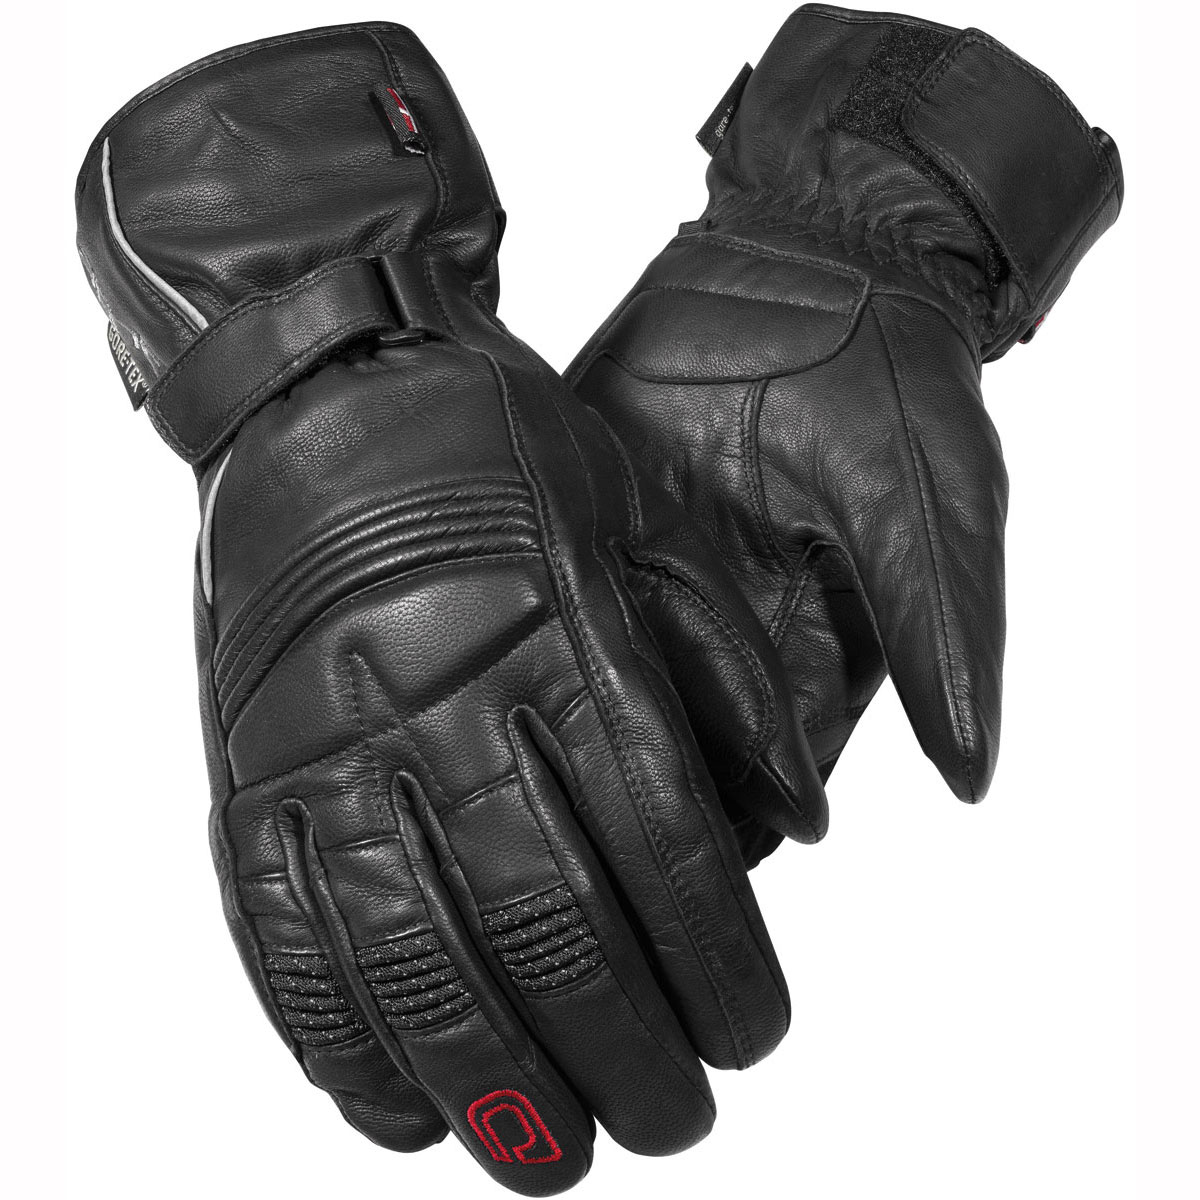 Jb Lighting P7 Kaufen Waterproof Motorcycle Gloves 2015 Leather Jackets Usa